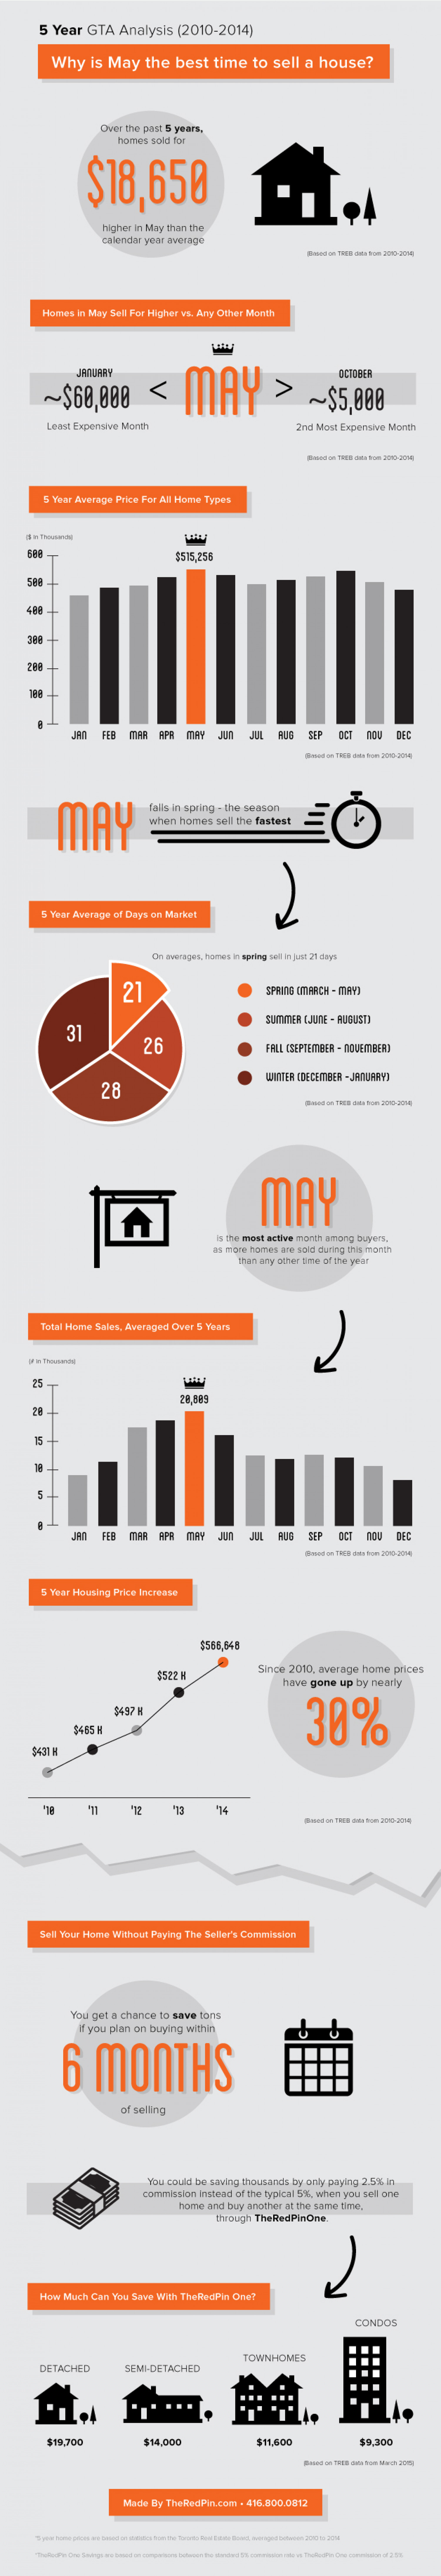 Real Estate: Want to sell your house? This is the best time of the year to do it Infographic